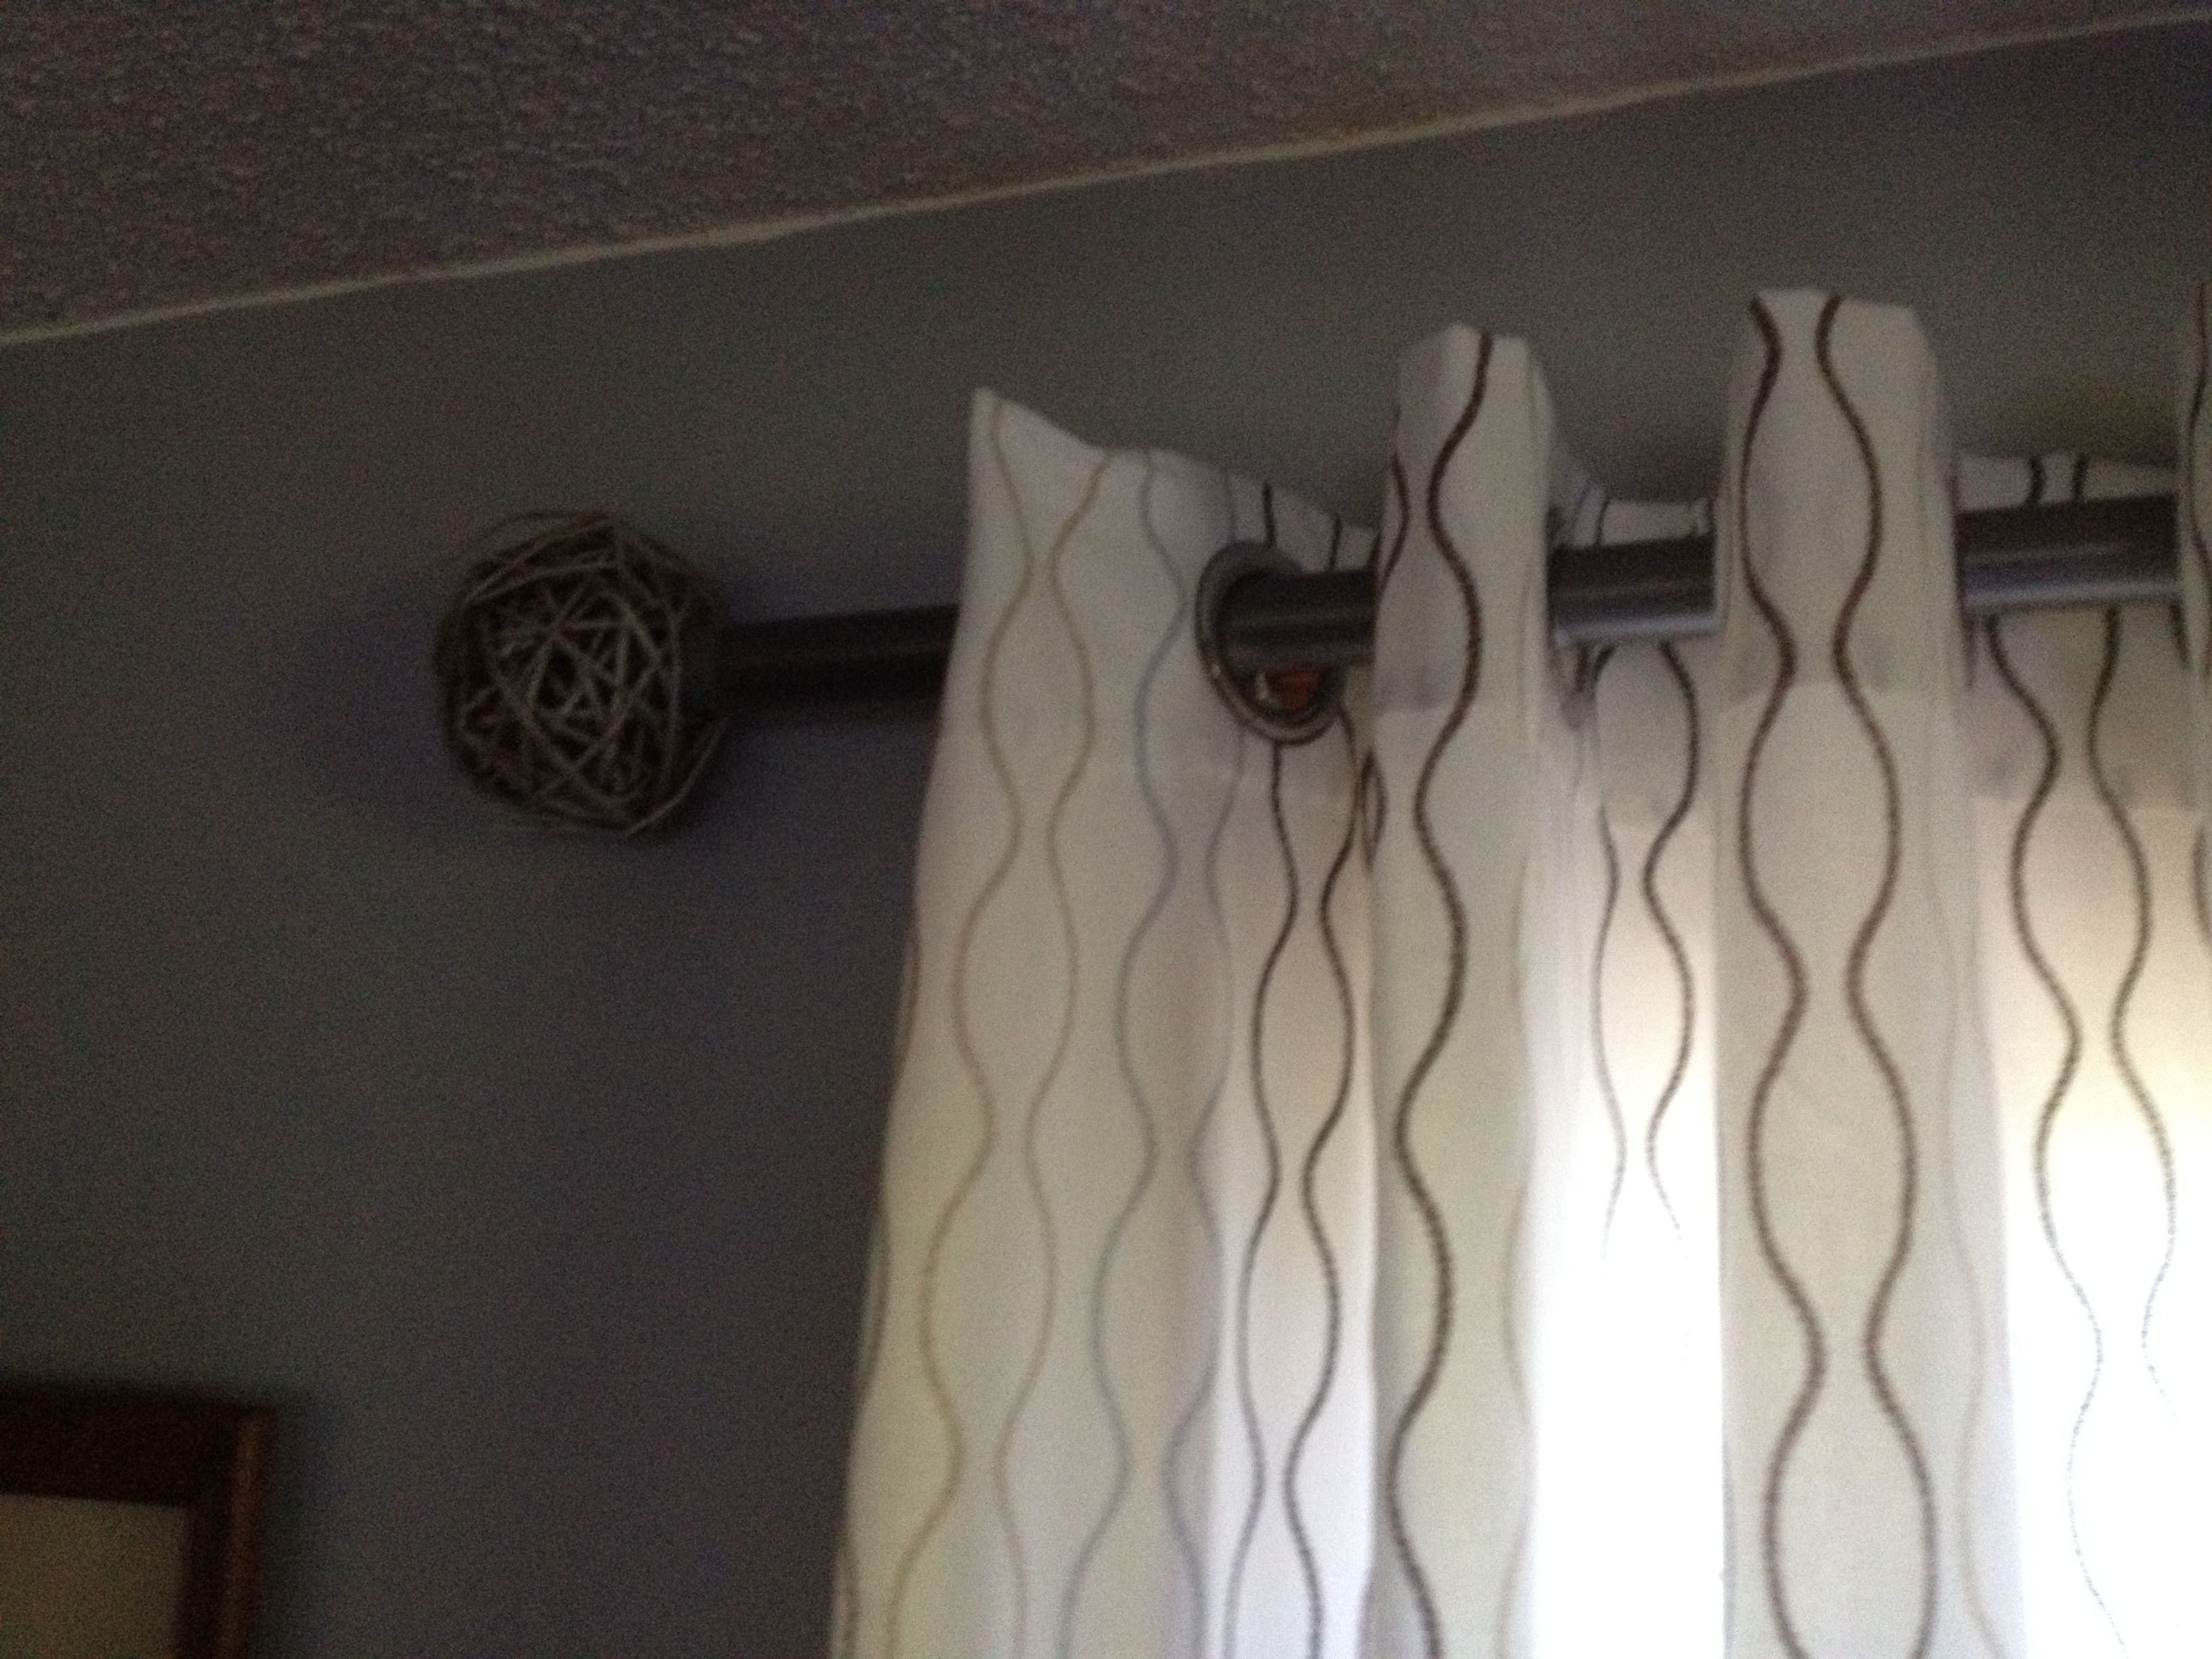 Wicker Balls From Michaels 3 99 Each Spray Painted Silver To